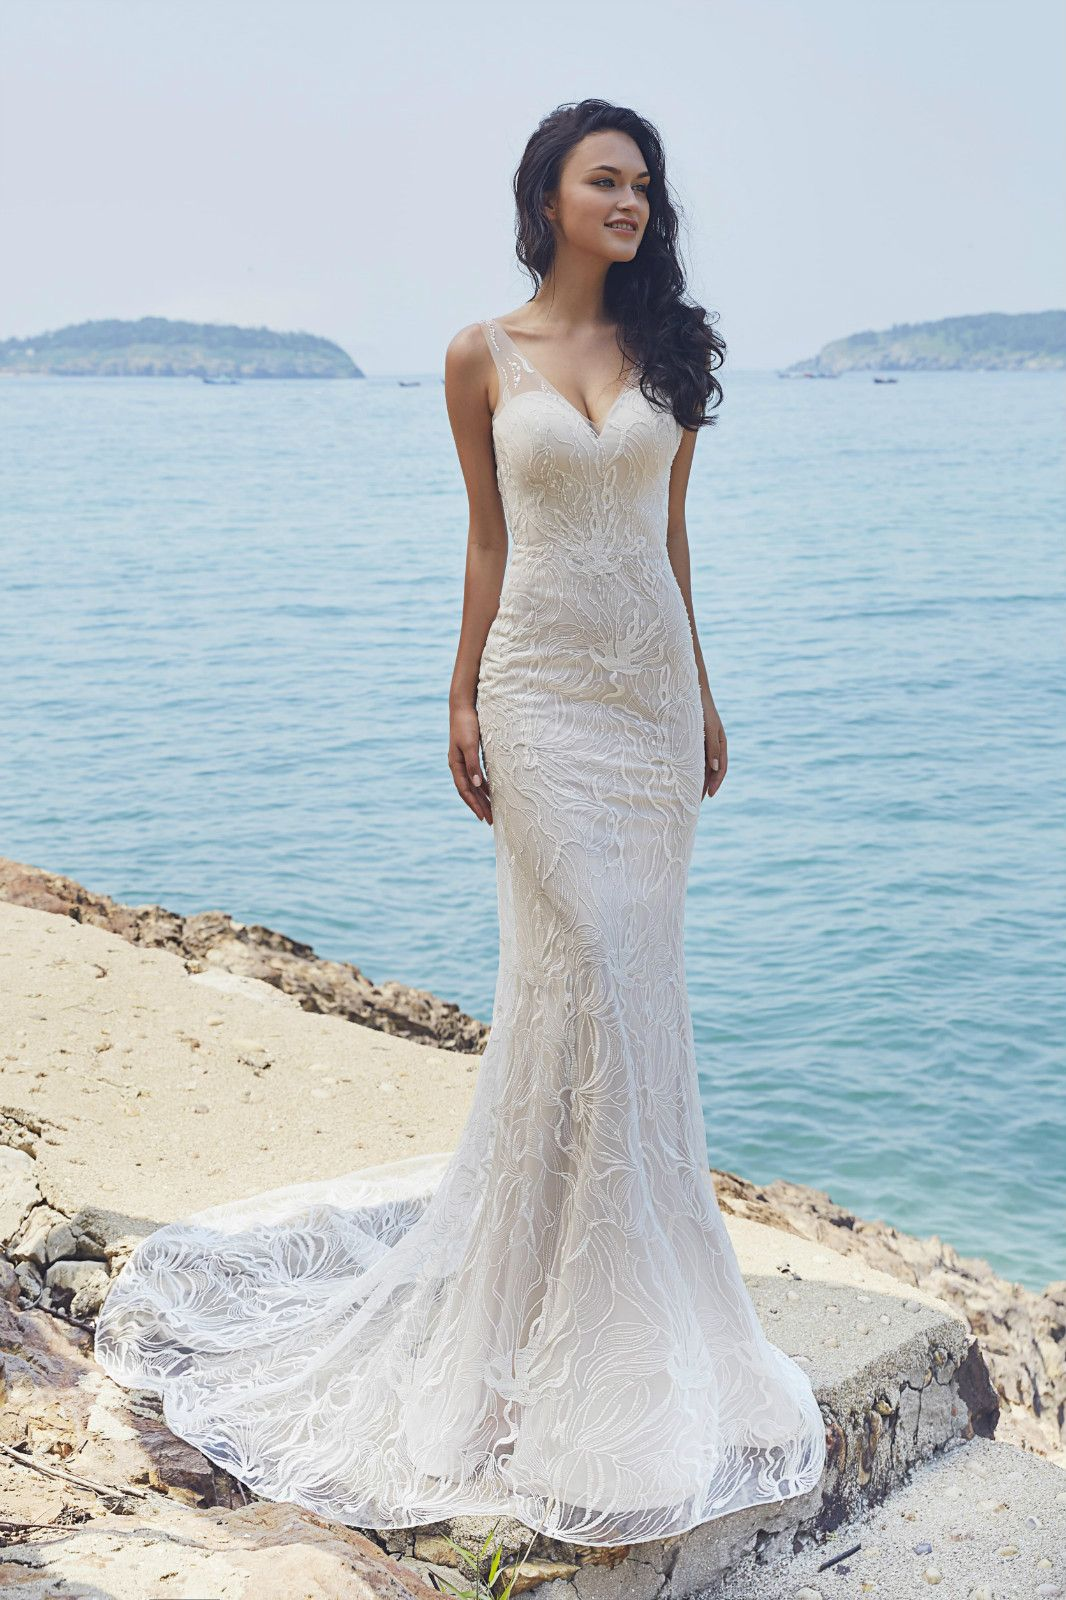 Virena by Chic Nostalgia will be coming soon to Sincerely, The Bride ...